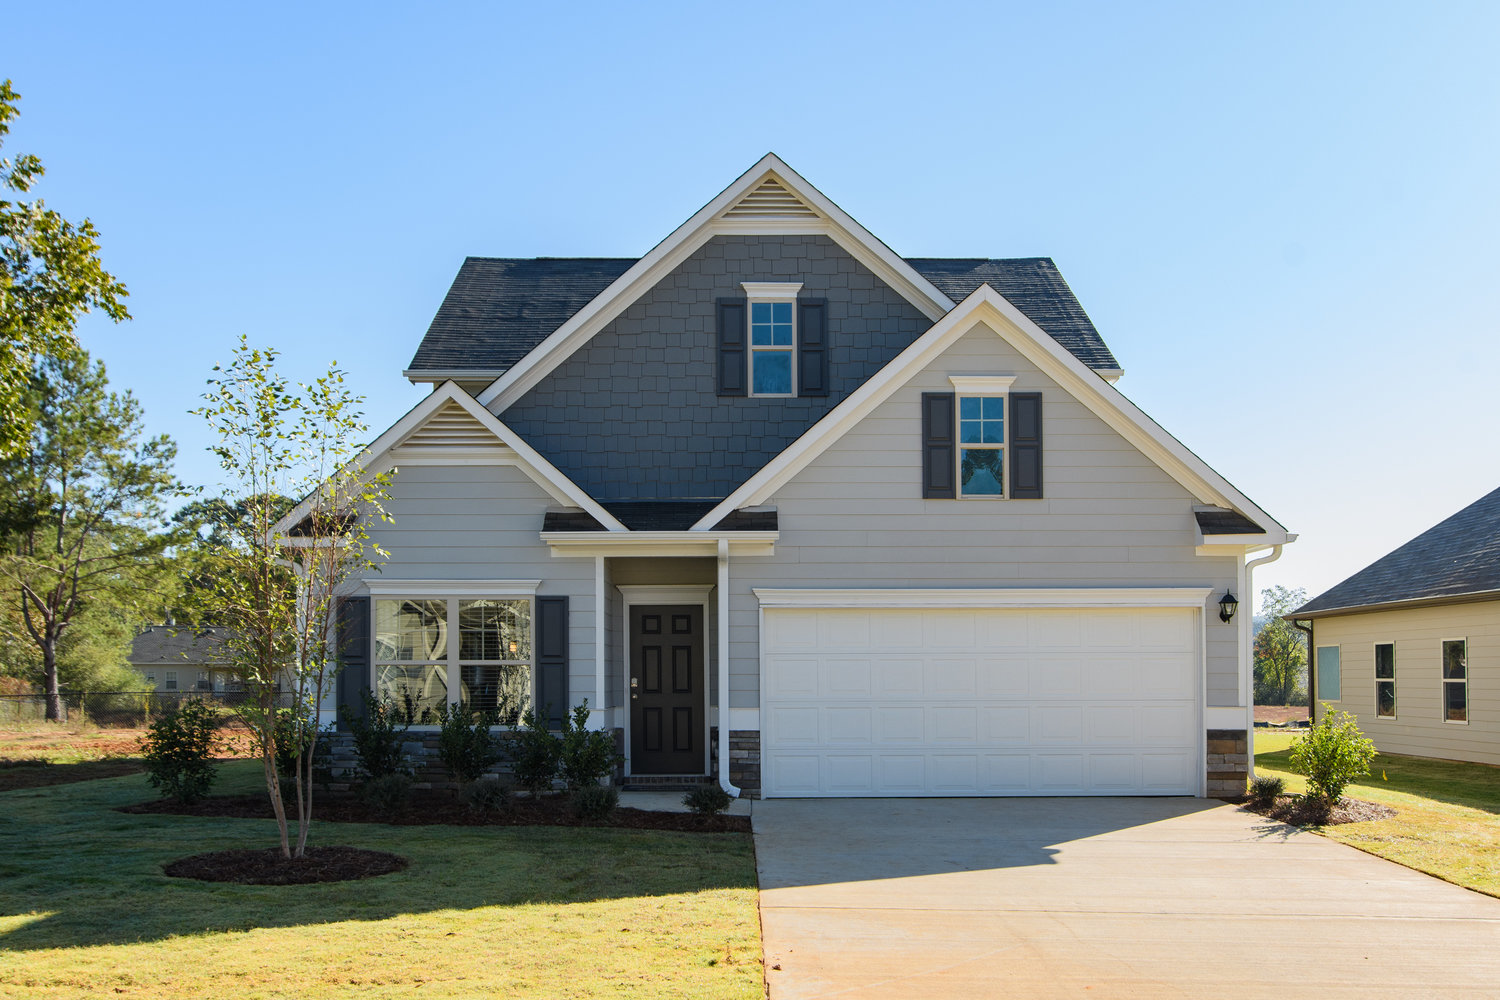 Virtual Tour of Birmingham Metro Real Estate Listing For Sale | The Carlyle - The Cove at Clarke Meadows, Leeds, AL 35094